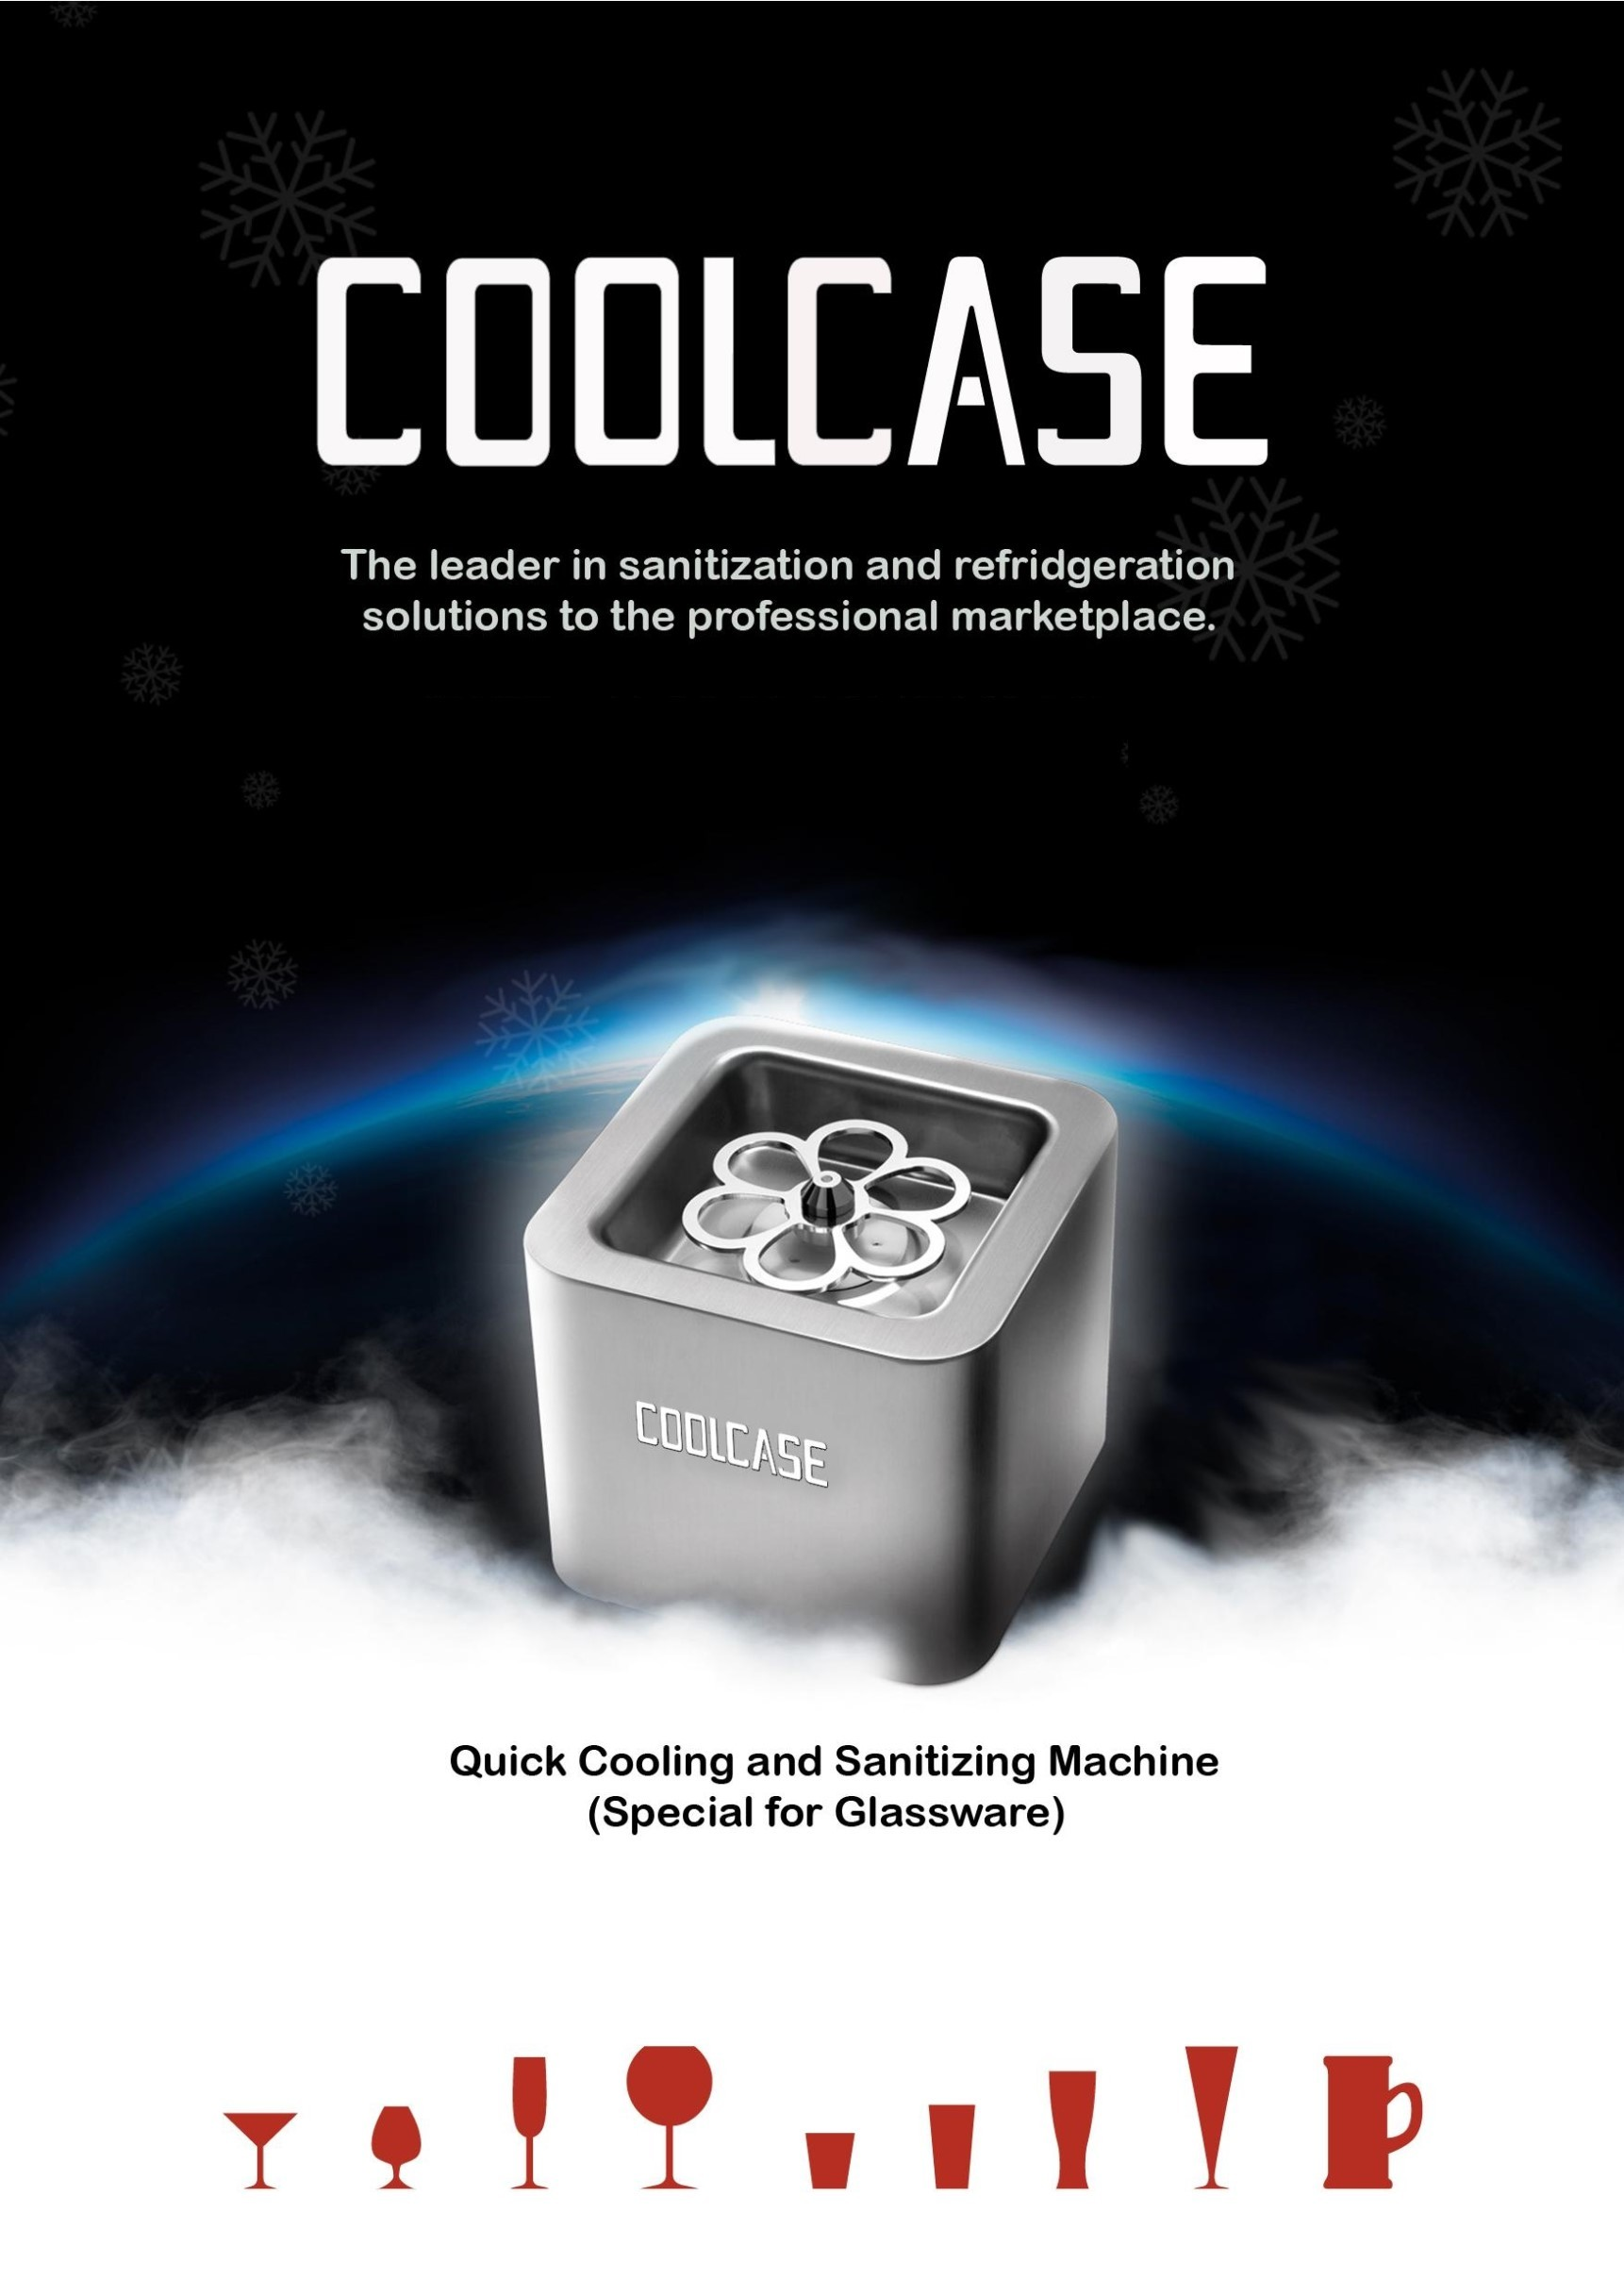 快速CO2冰杯機 COOLCASE quick cooling and sanitizing machine - for glassware